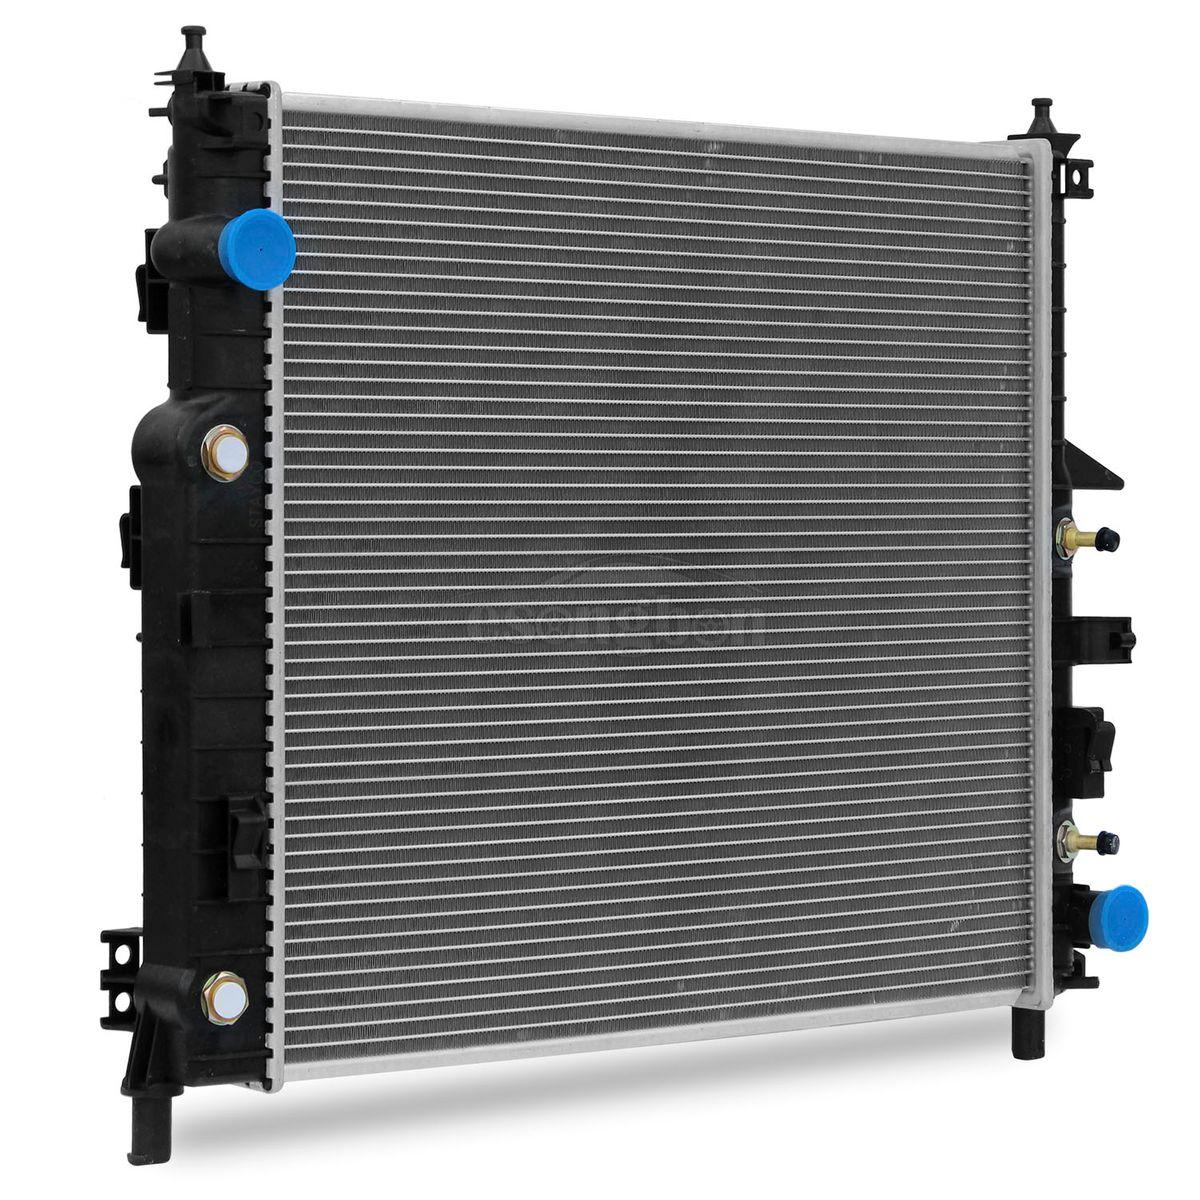 Stayco radiator 2190 cooling set for mercedes benz ml320 for Mercedes benz radiator